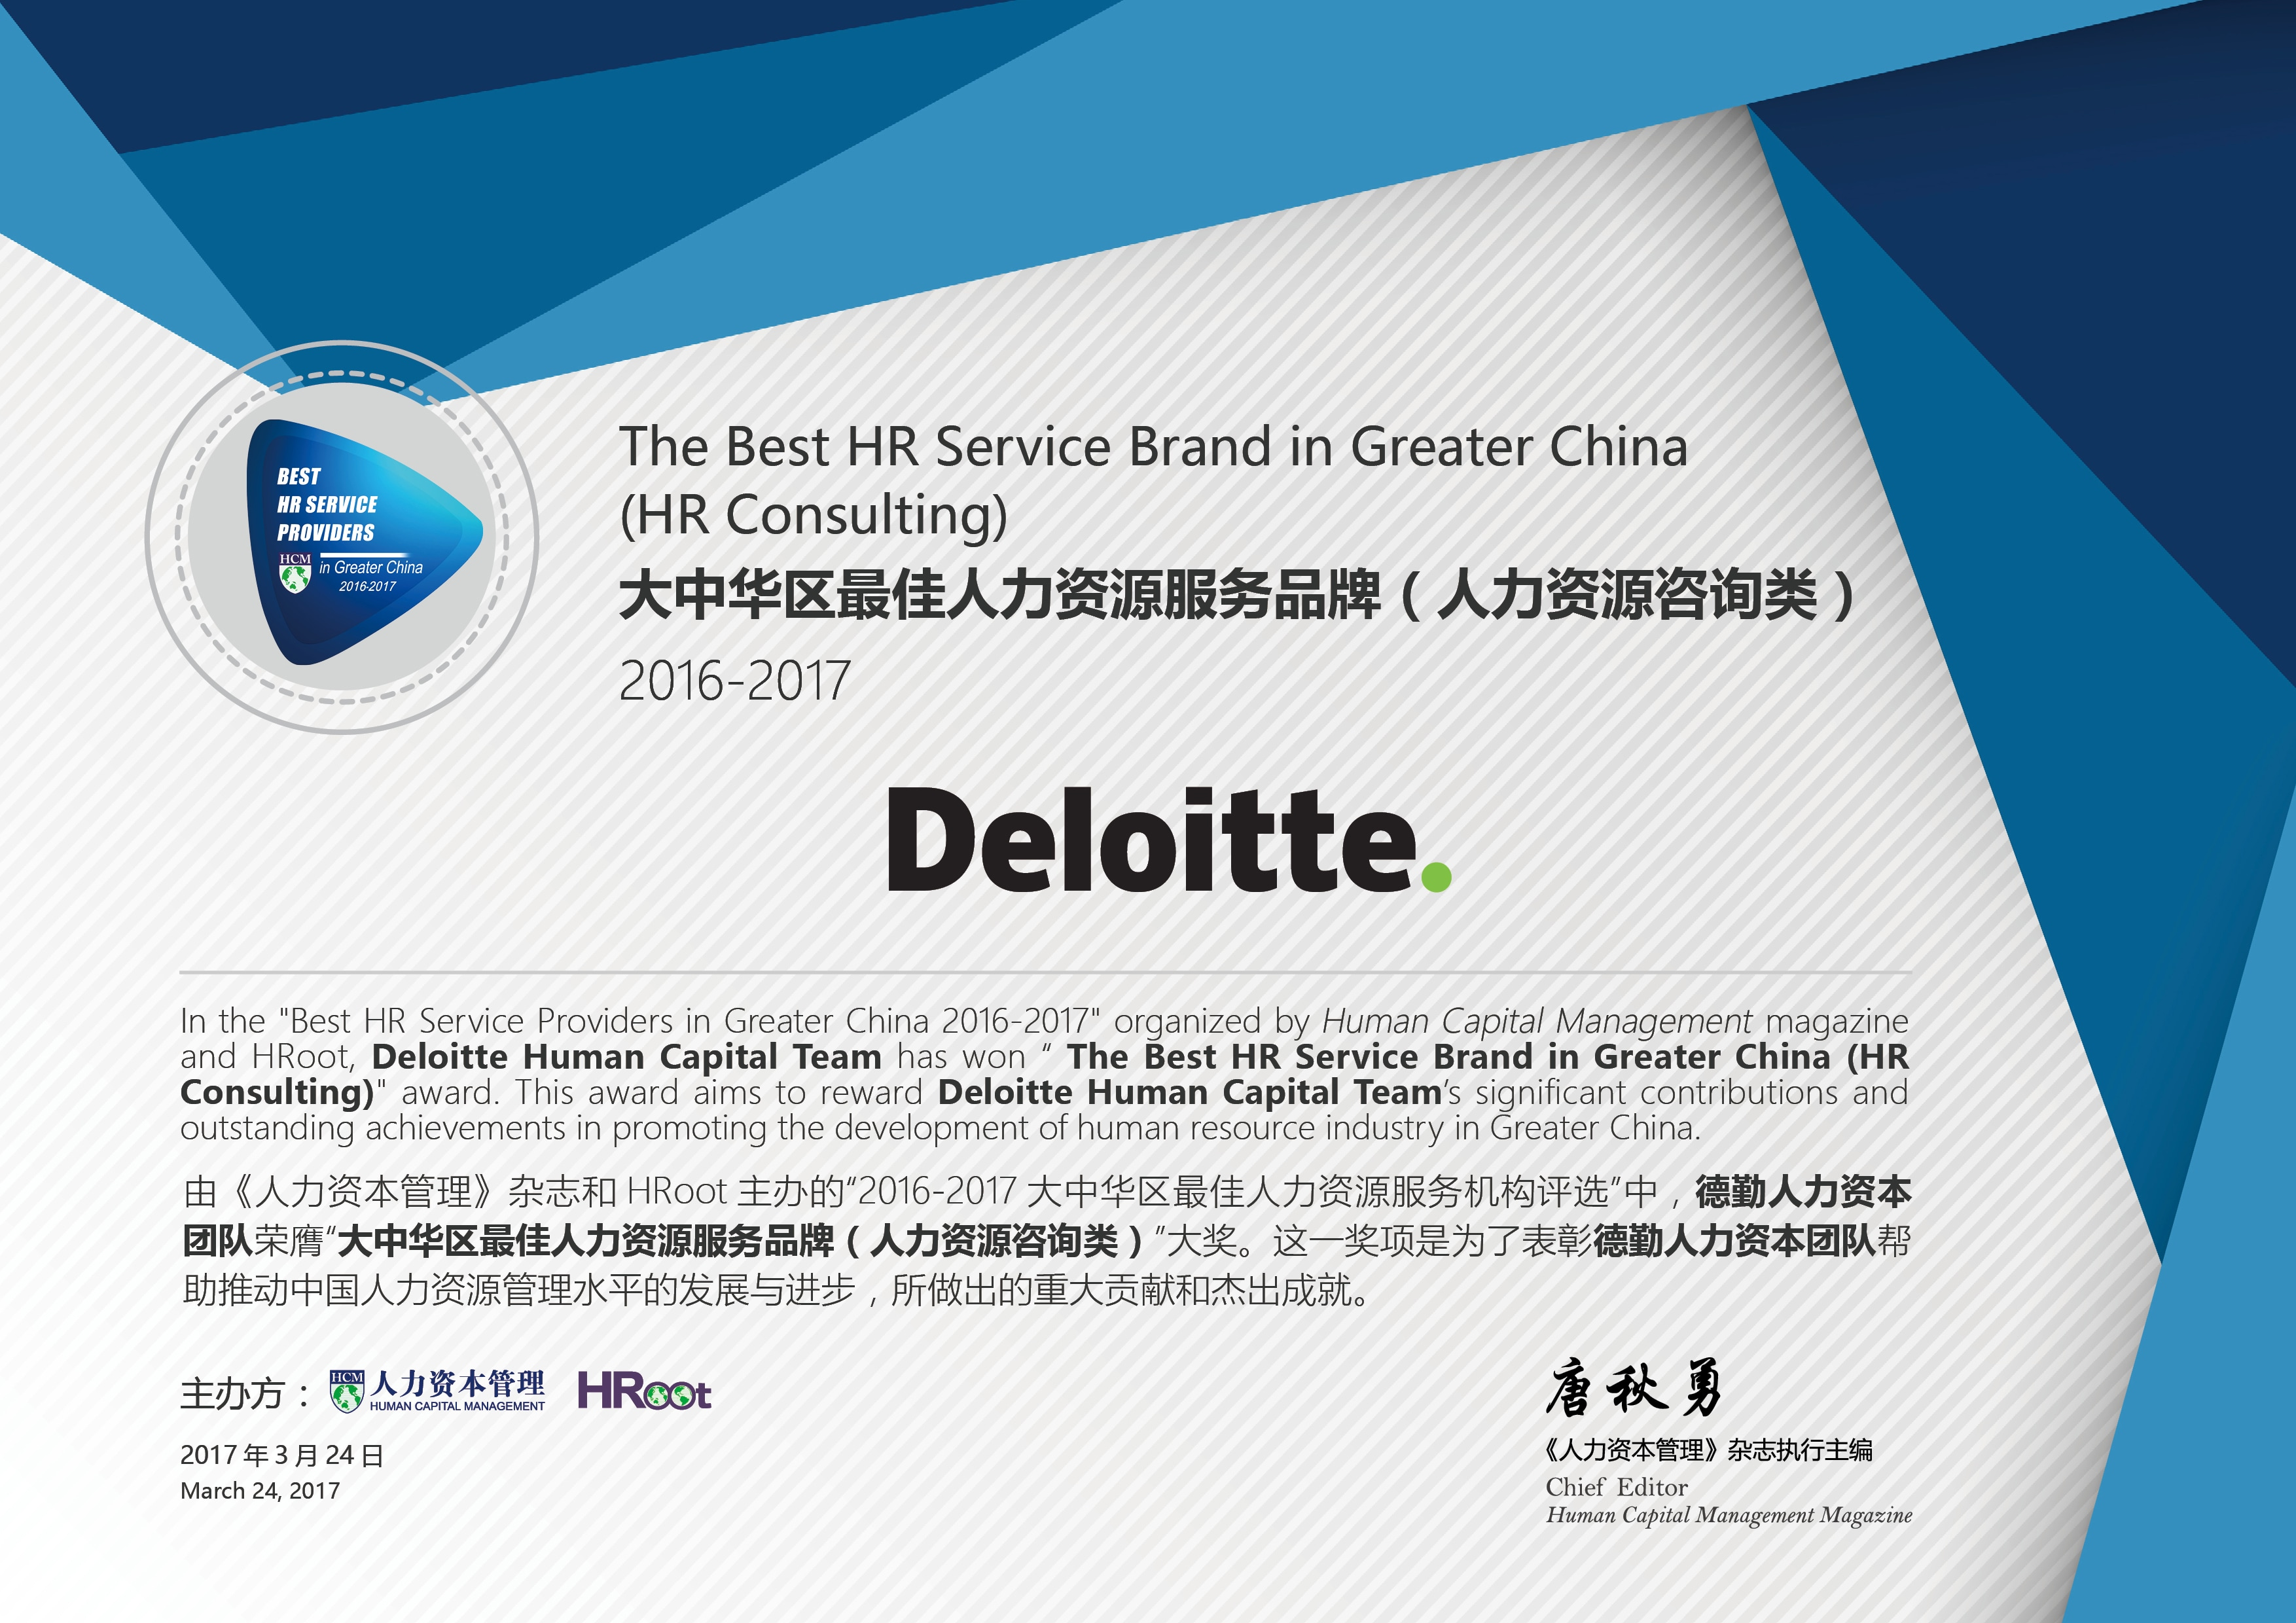 Deloitte Human Capital Team Won The Best Hr Service Brand In Greater China Deloitte China Human Capital